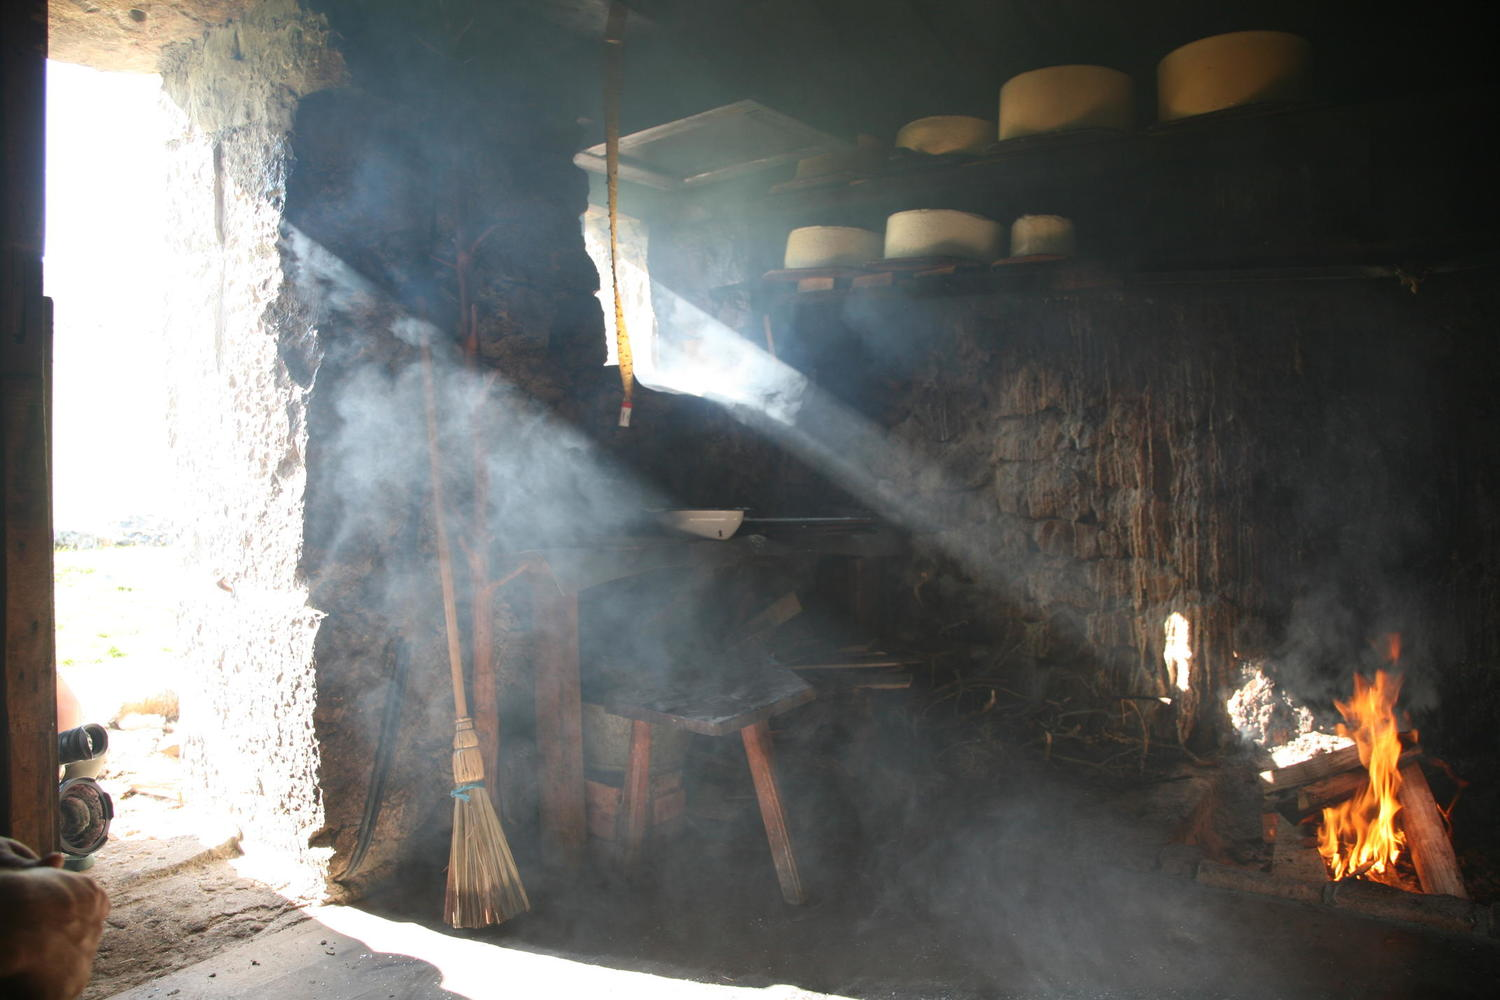 Sunlight entering the cheese curing caves of the Picos